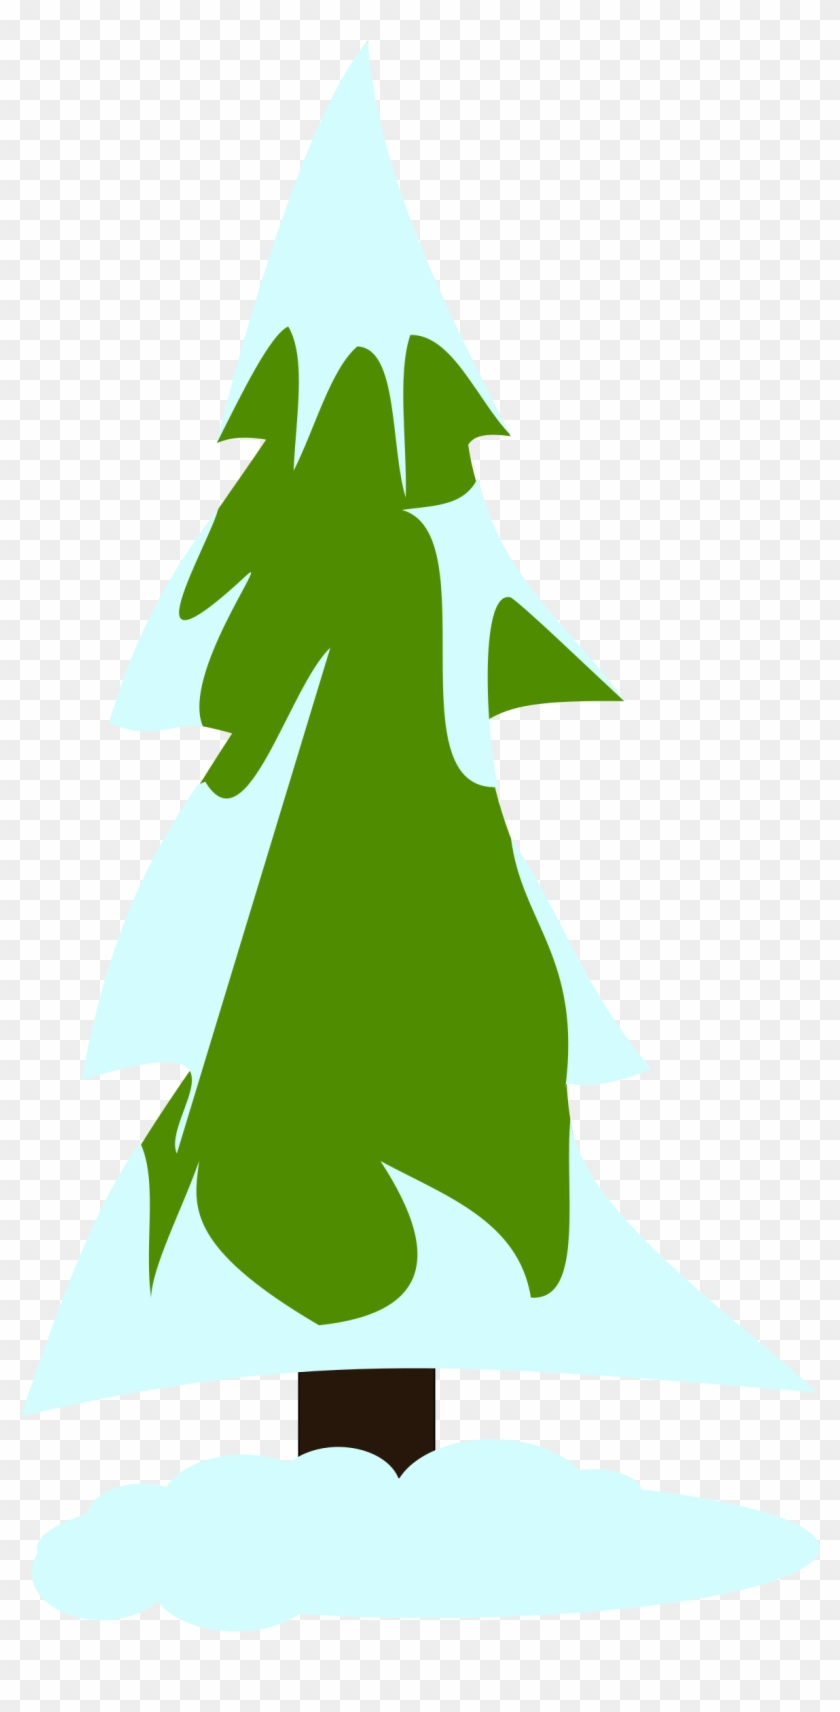 Snow Covered Pine Tree Clip Art Pine Tree Clip Art - Clip Art #34573